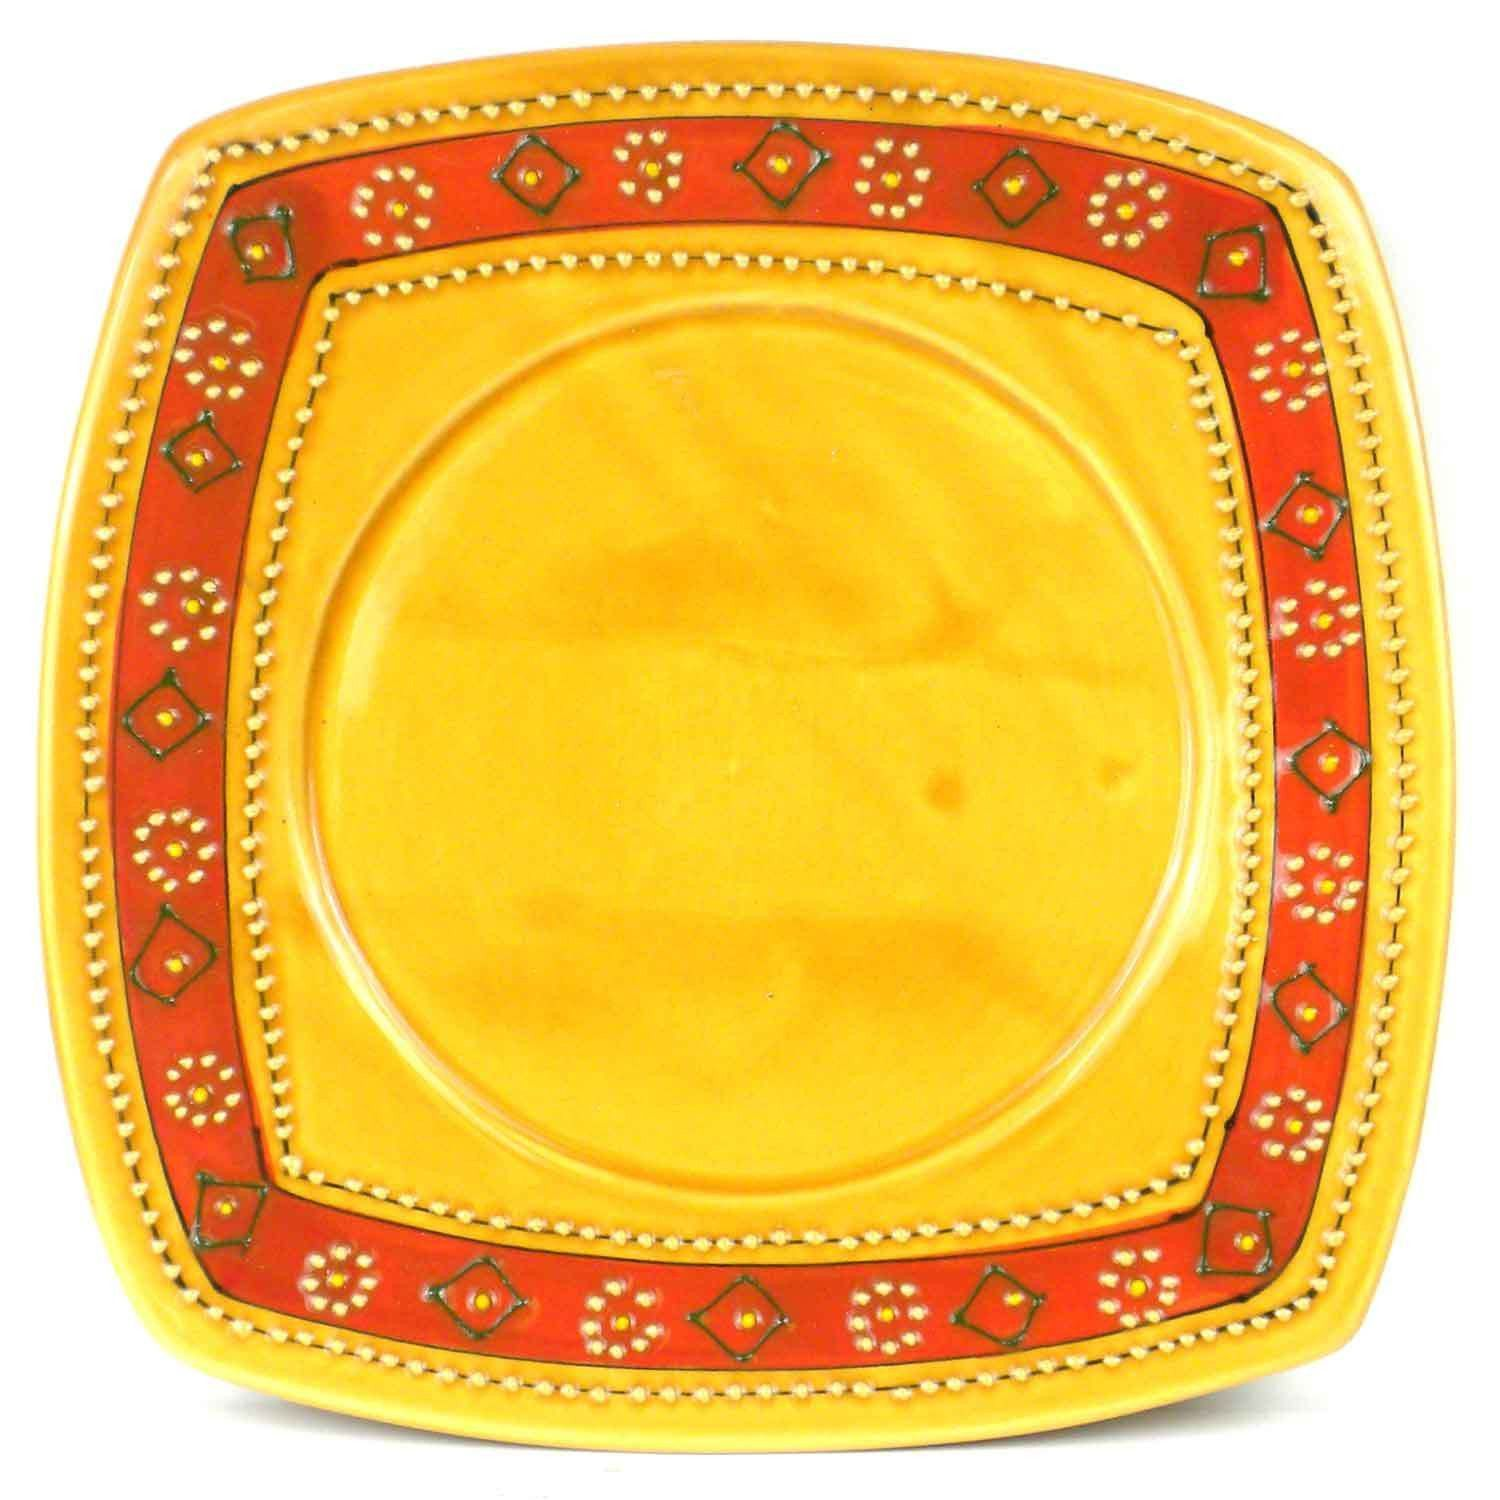 Lead-free dishwasher and microwave safe this richly-colored square plate is  sc 1 st  Pinterest & Lead-free dishwasher and microwave safe this richly-colored ...